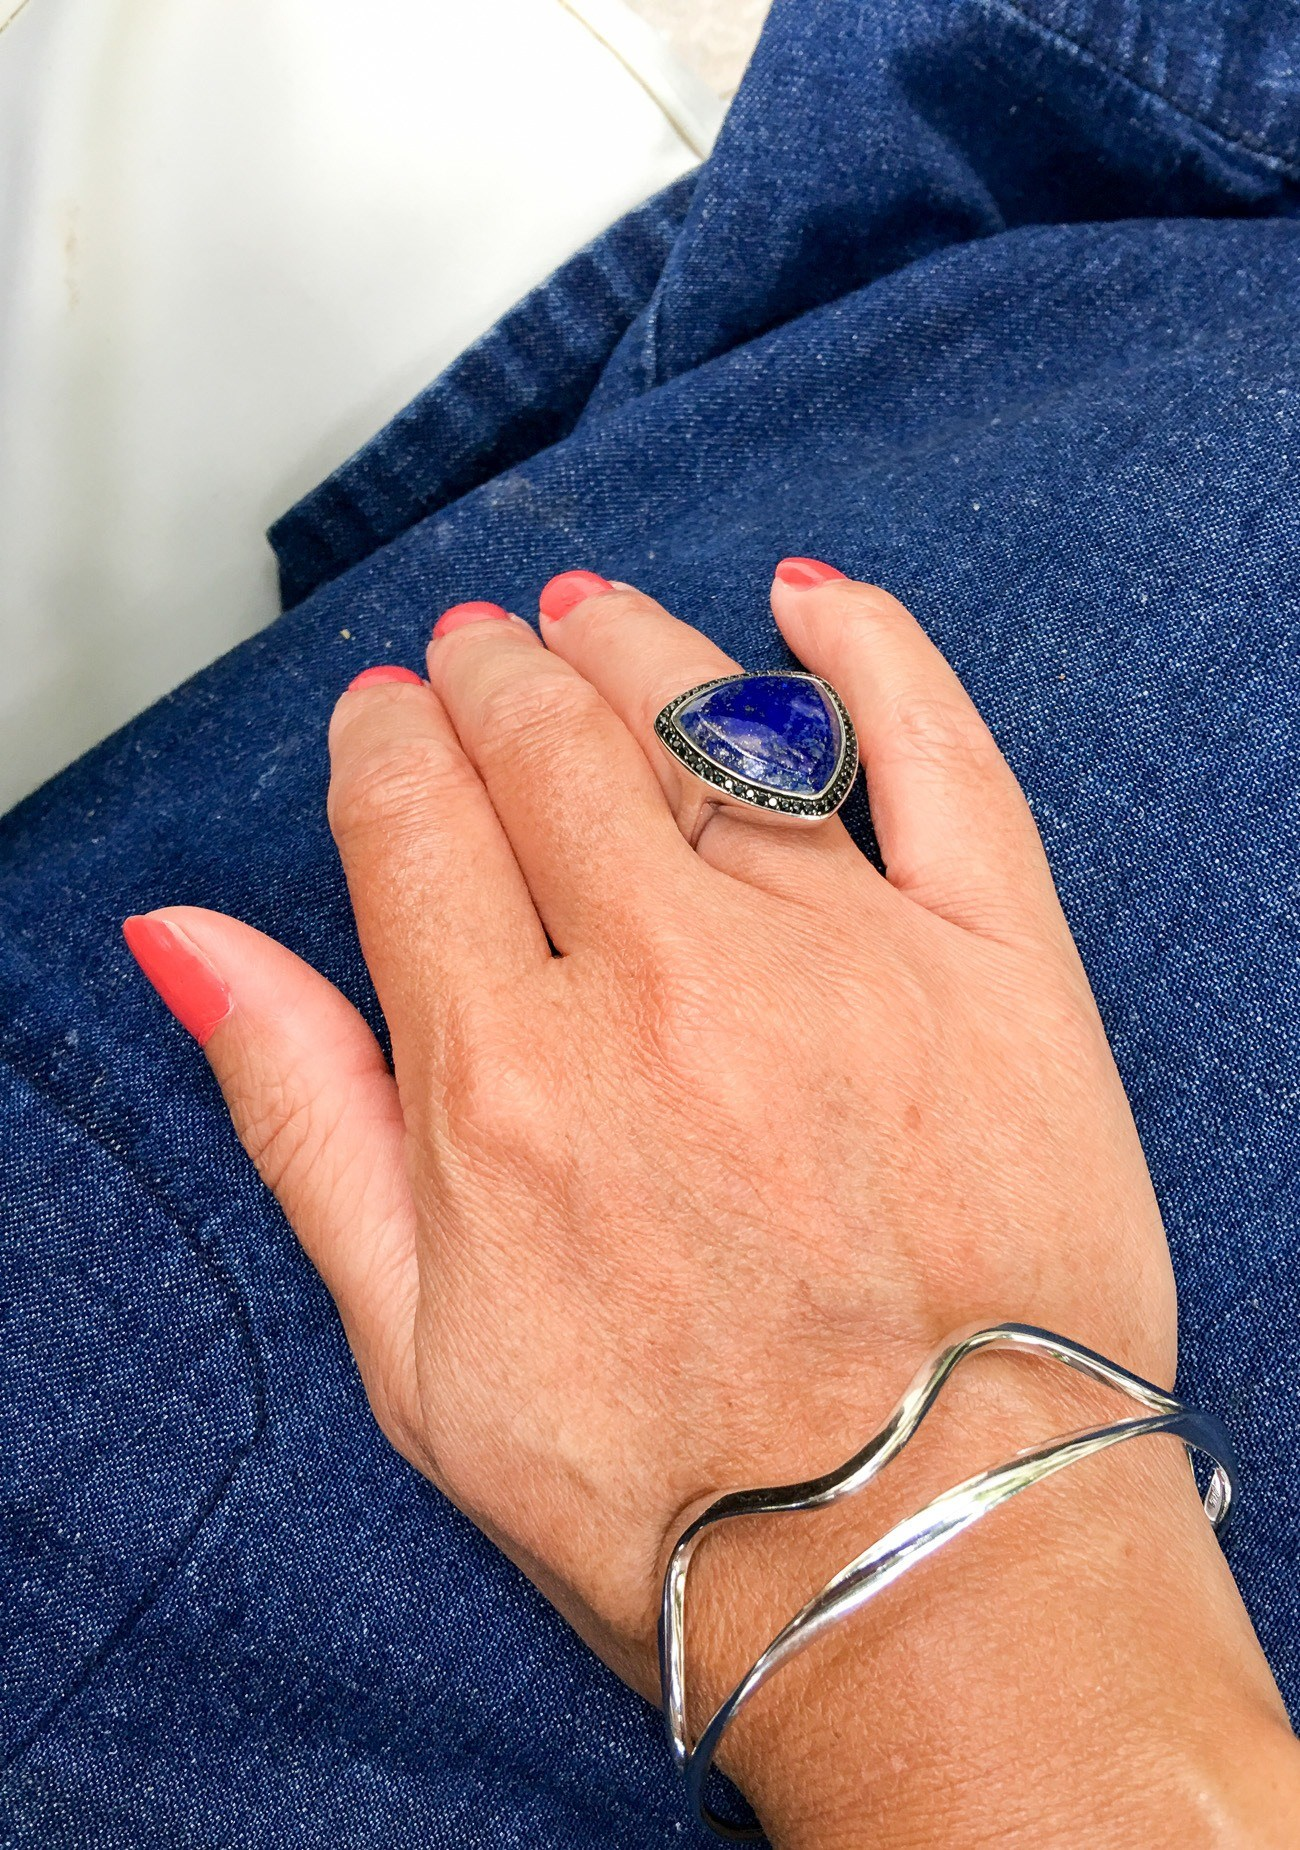 It is easy to pair lapis lazuli with basics like denim and a white t-shirt.